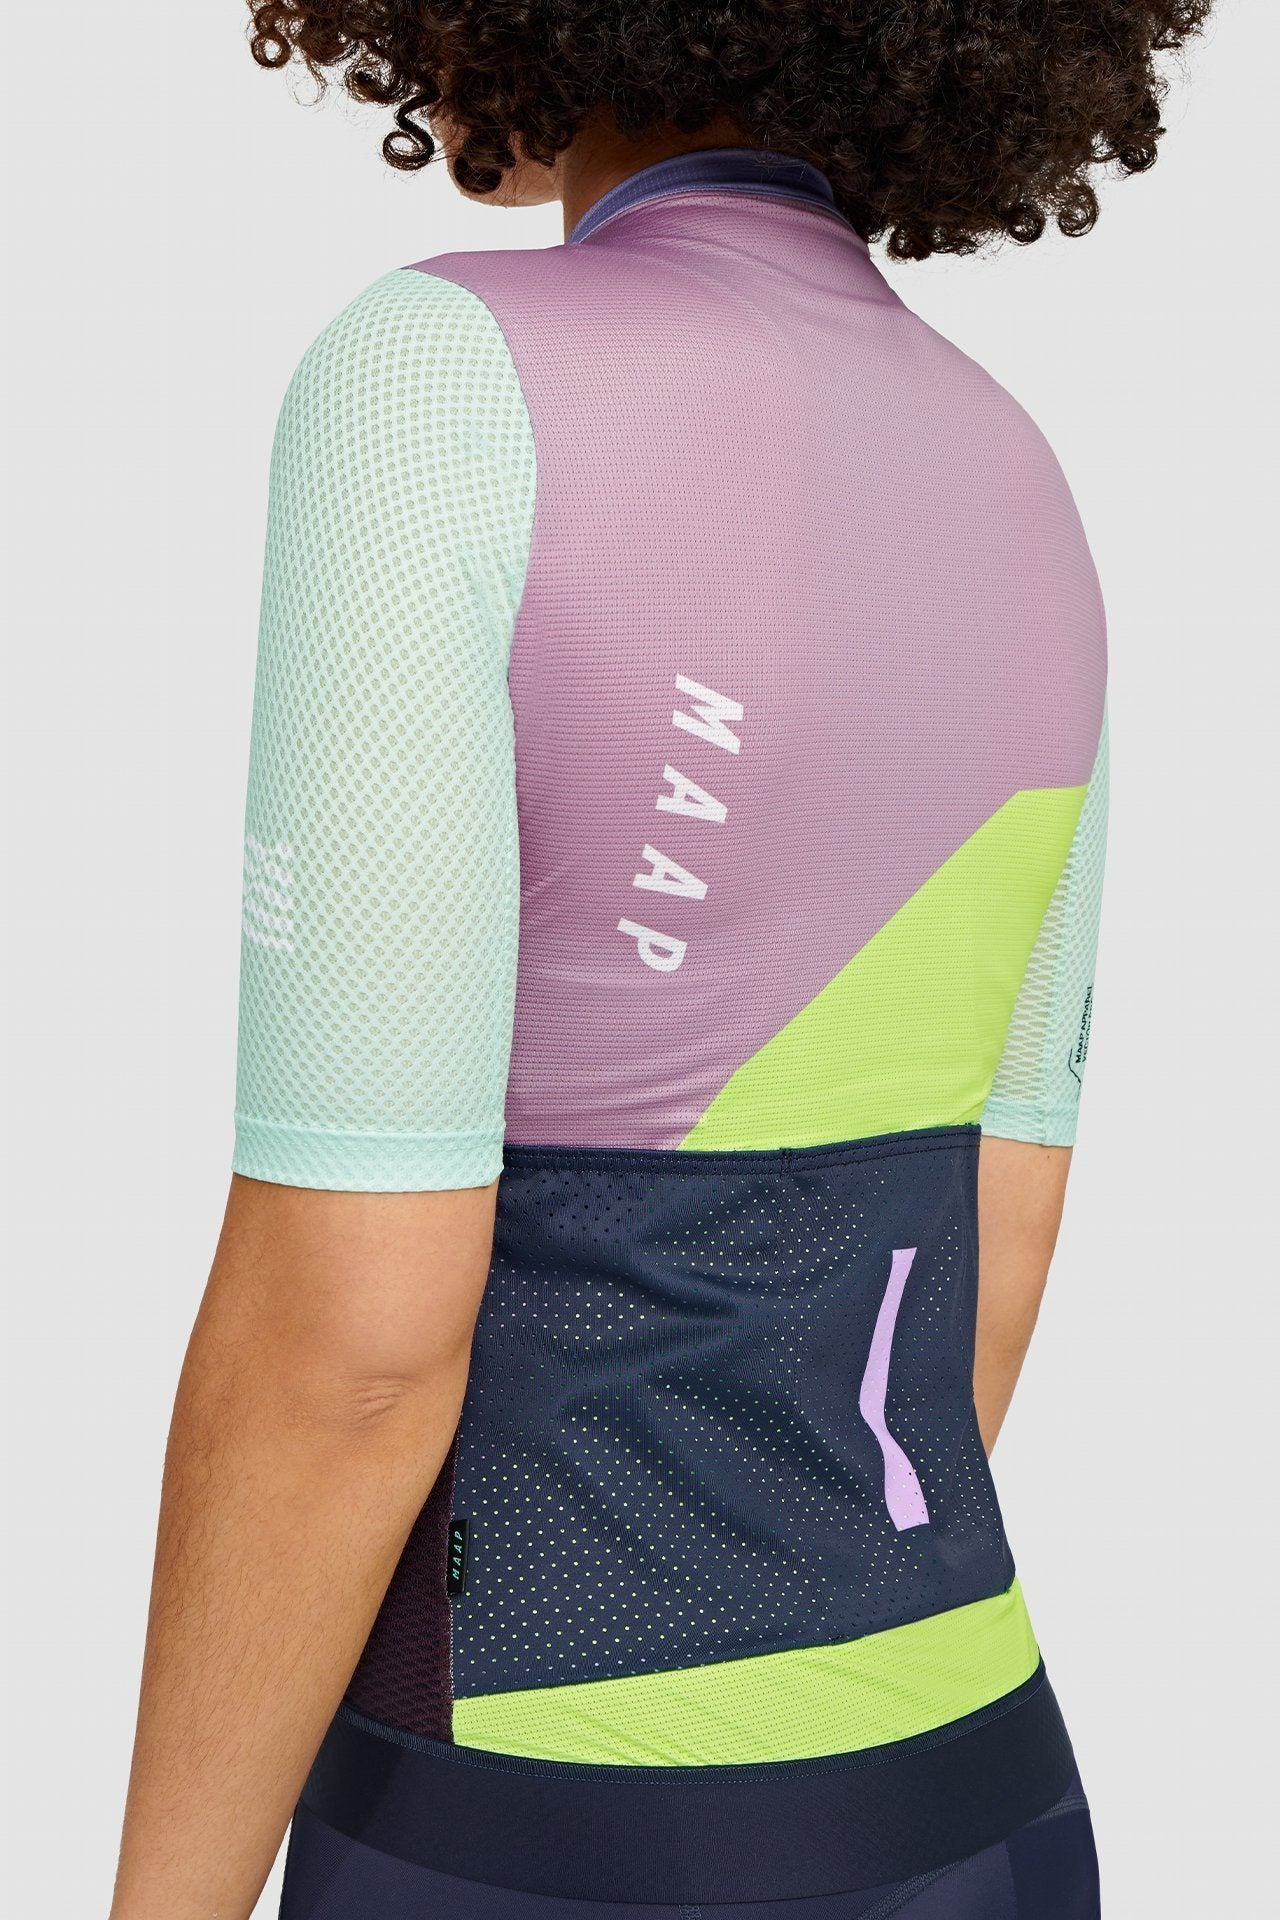 MAAP Women's Vector Pro Air Jersey 2.0 - Spearmint Cycling Jersey MAAP